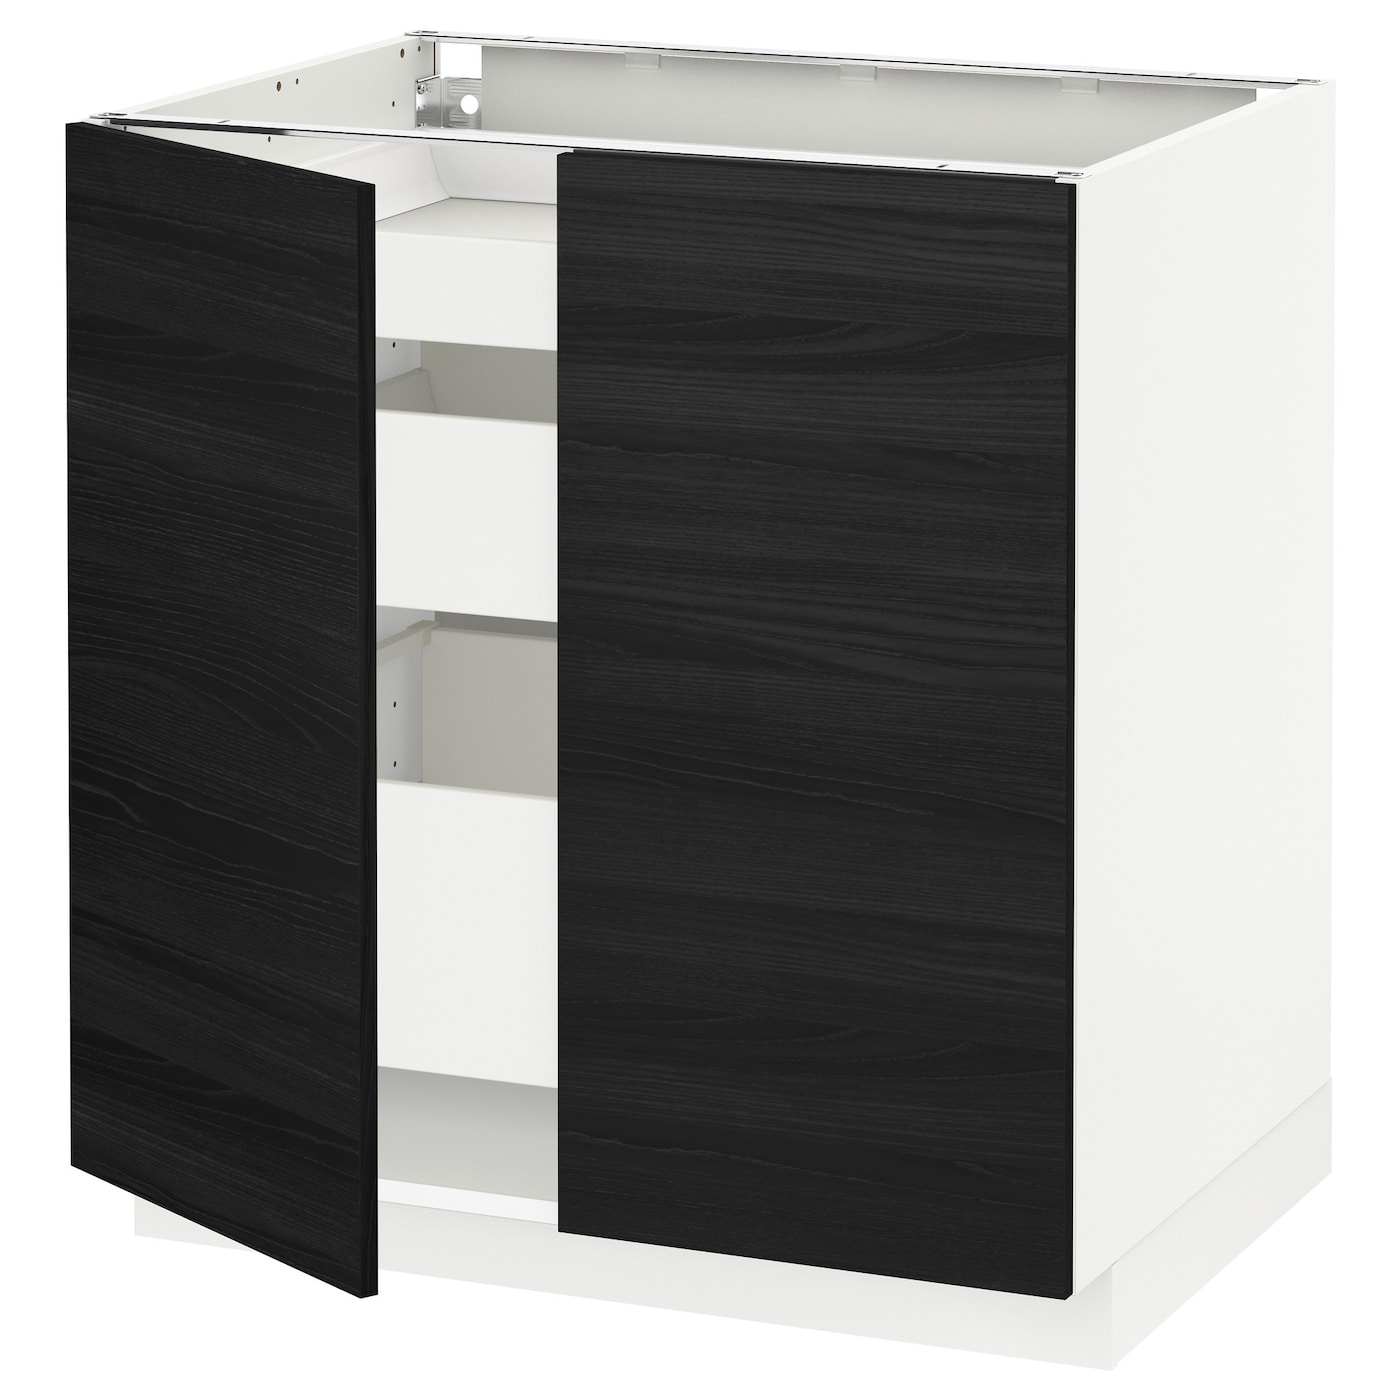 IKEA METOD/MAXIMERA base cabinet w 2 doors/3 drawers Sturdy frame construction, 18 mm thick.